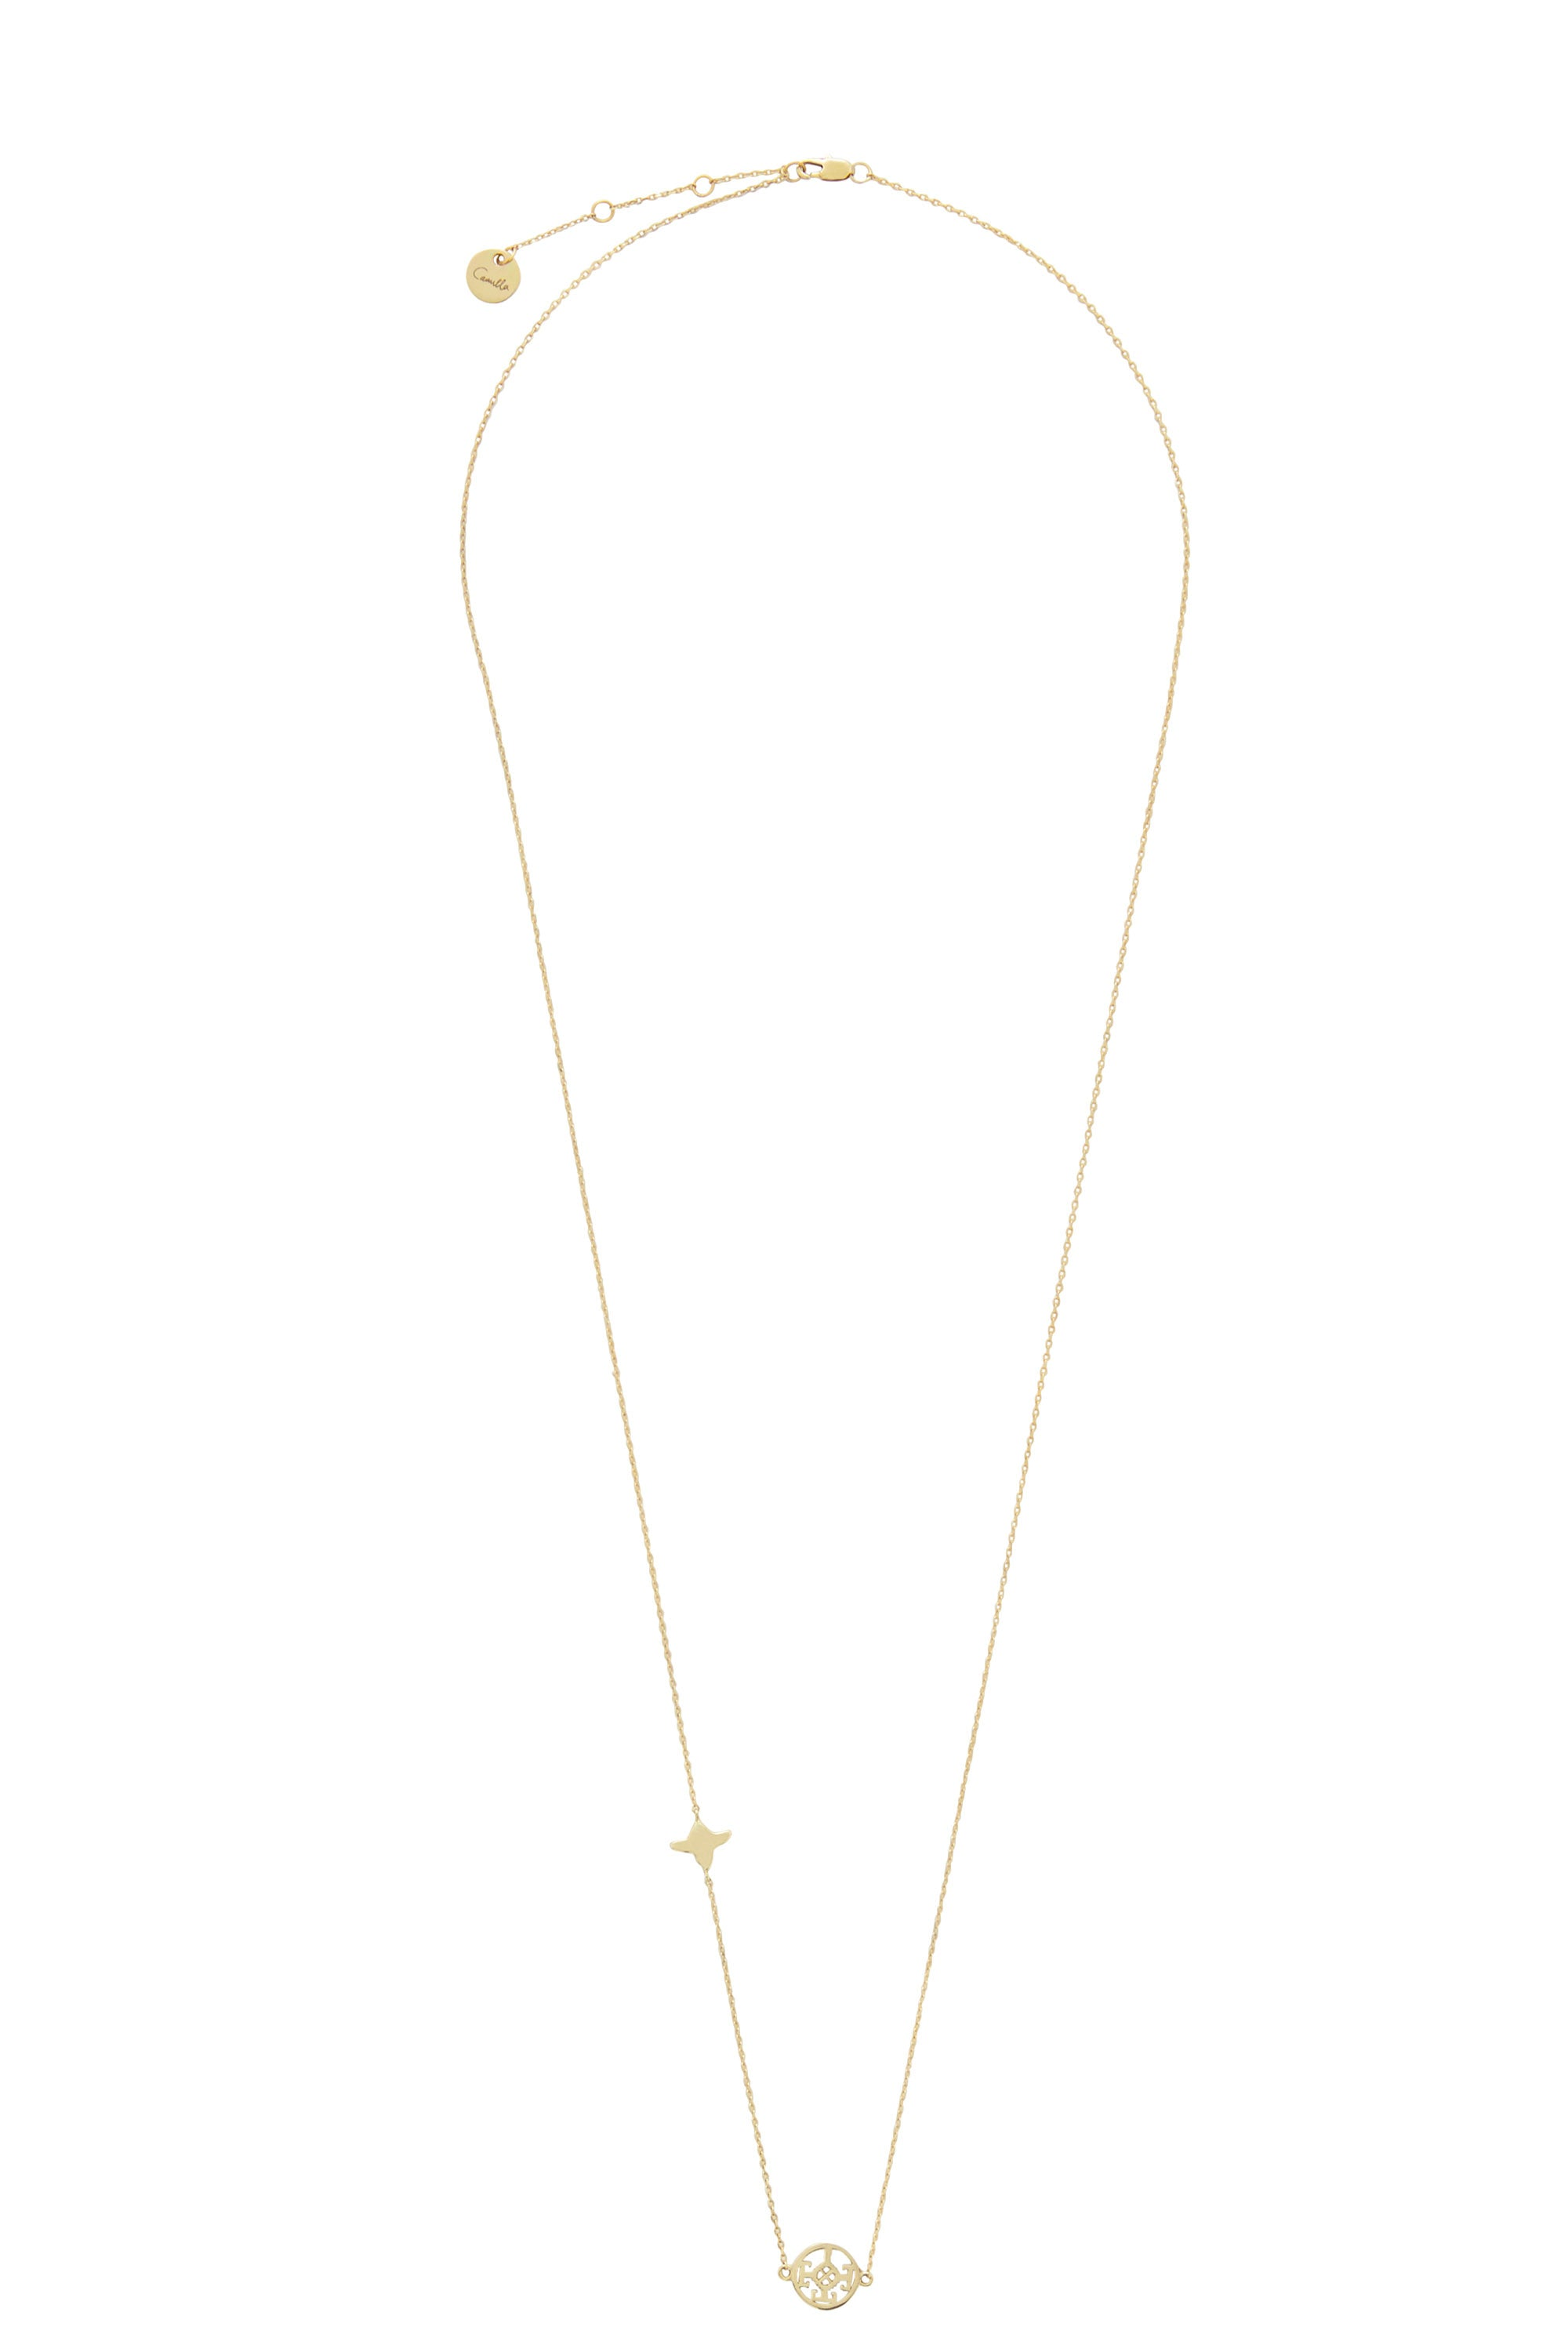 GOLD BRASSS CUT OUT PENDANT NECKLACE